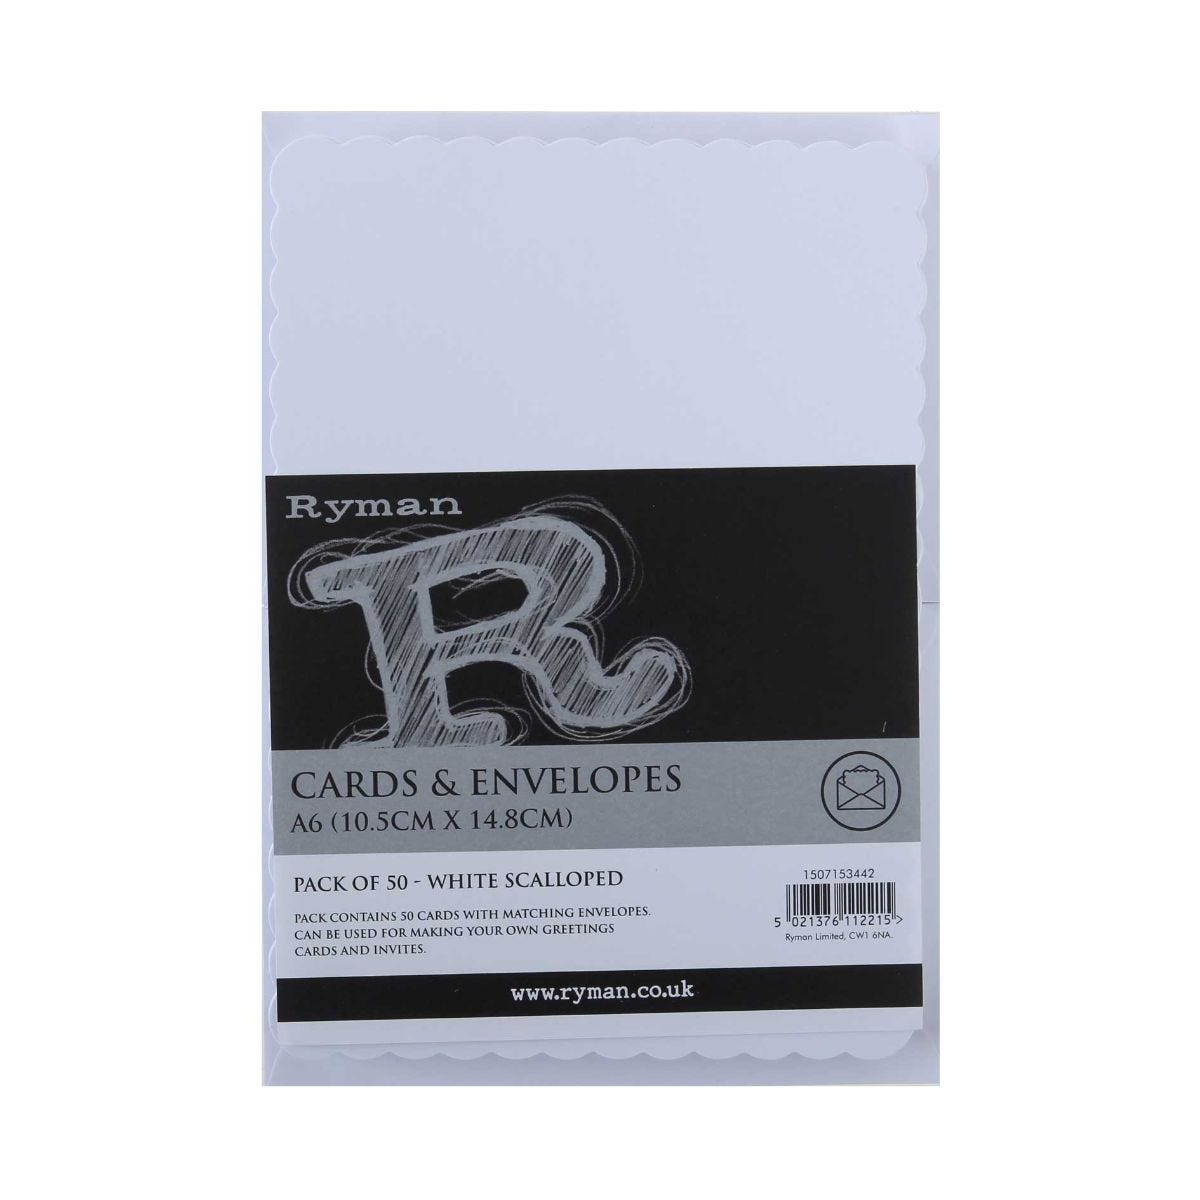 Ryman Cards and envelopes Scalloped A6 250gsm Pack of 50, White.